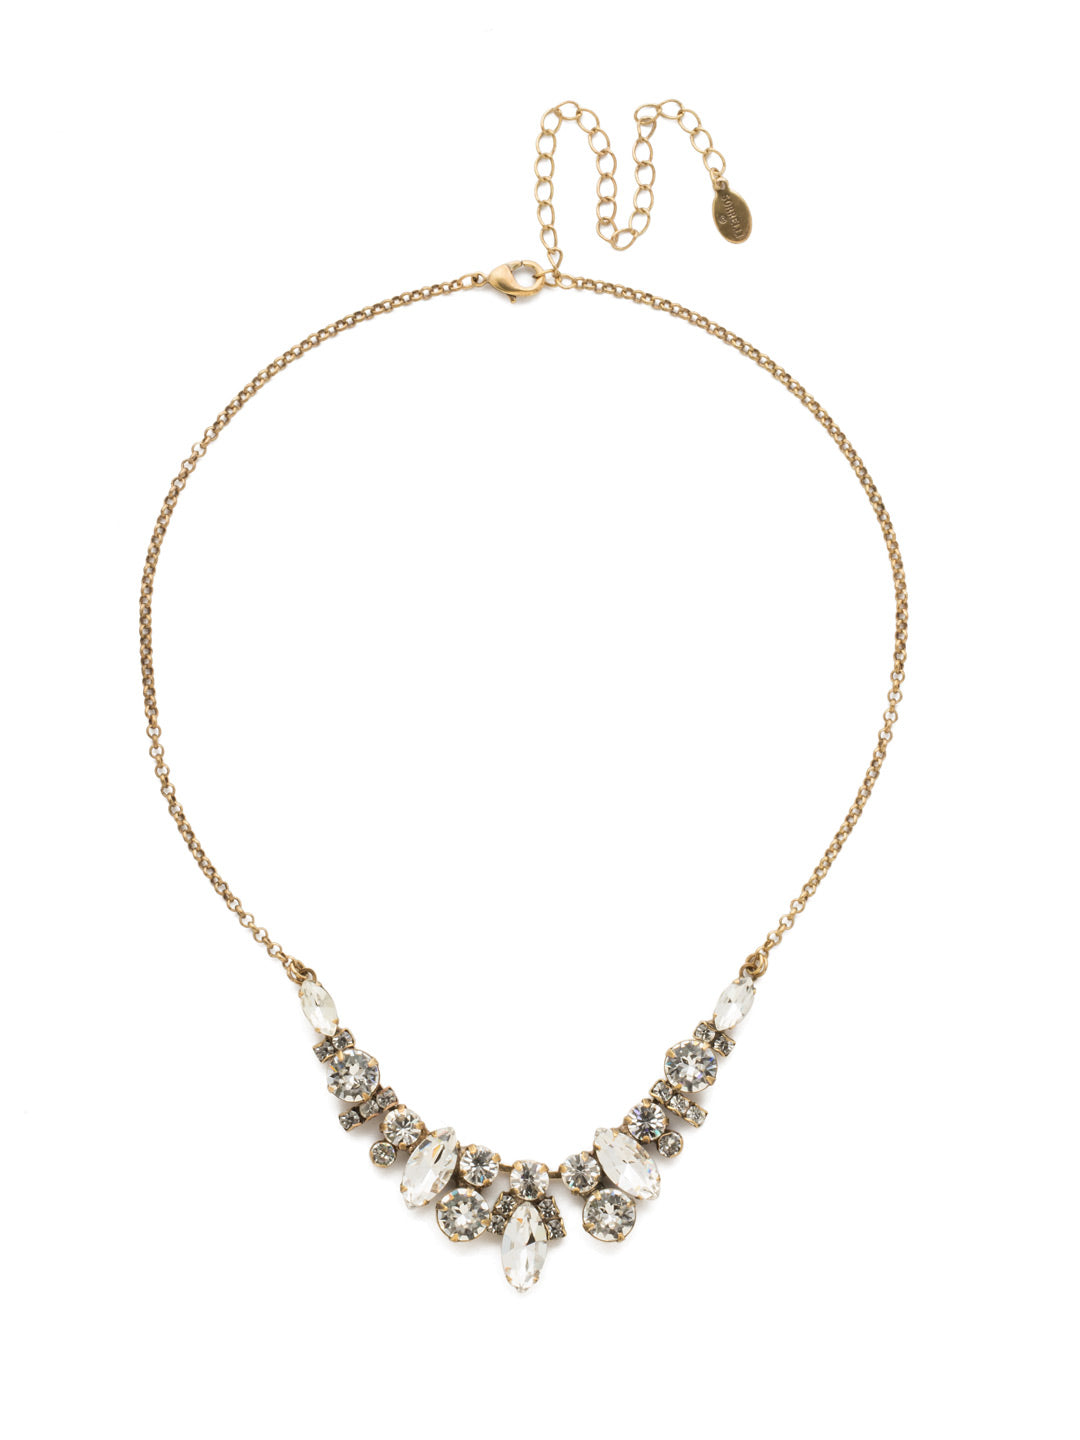 Noveau Navette Statement Necklace - NDG90AGCRY